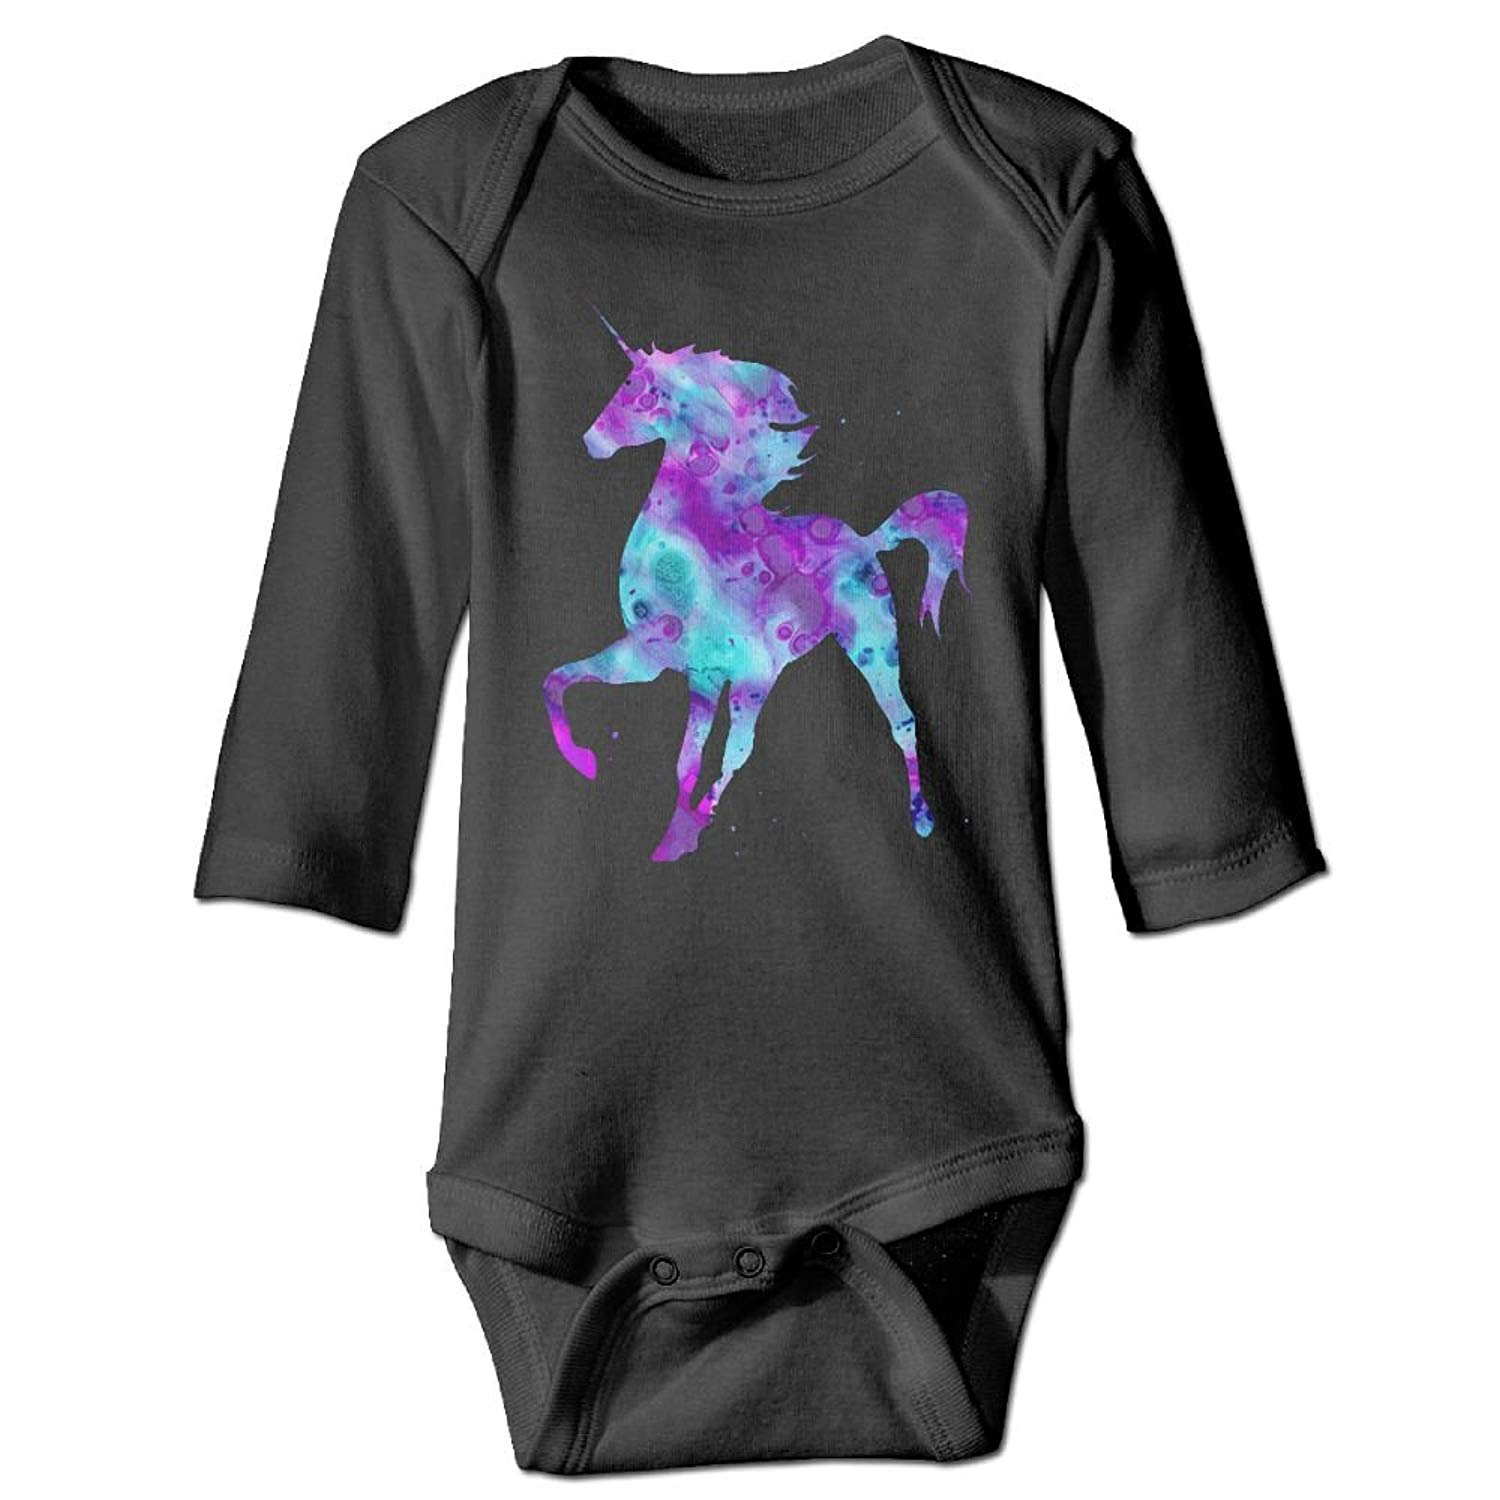 86dded4bb7b Get Quotations · Guw Rompers Art Unicorn Baby Long Sleeve Multiple Colors  Bodysuits Organic Cotton Pajamas Bodysuits